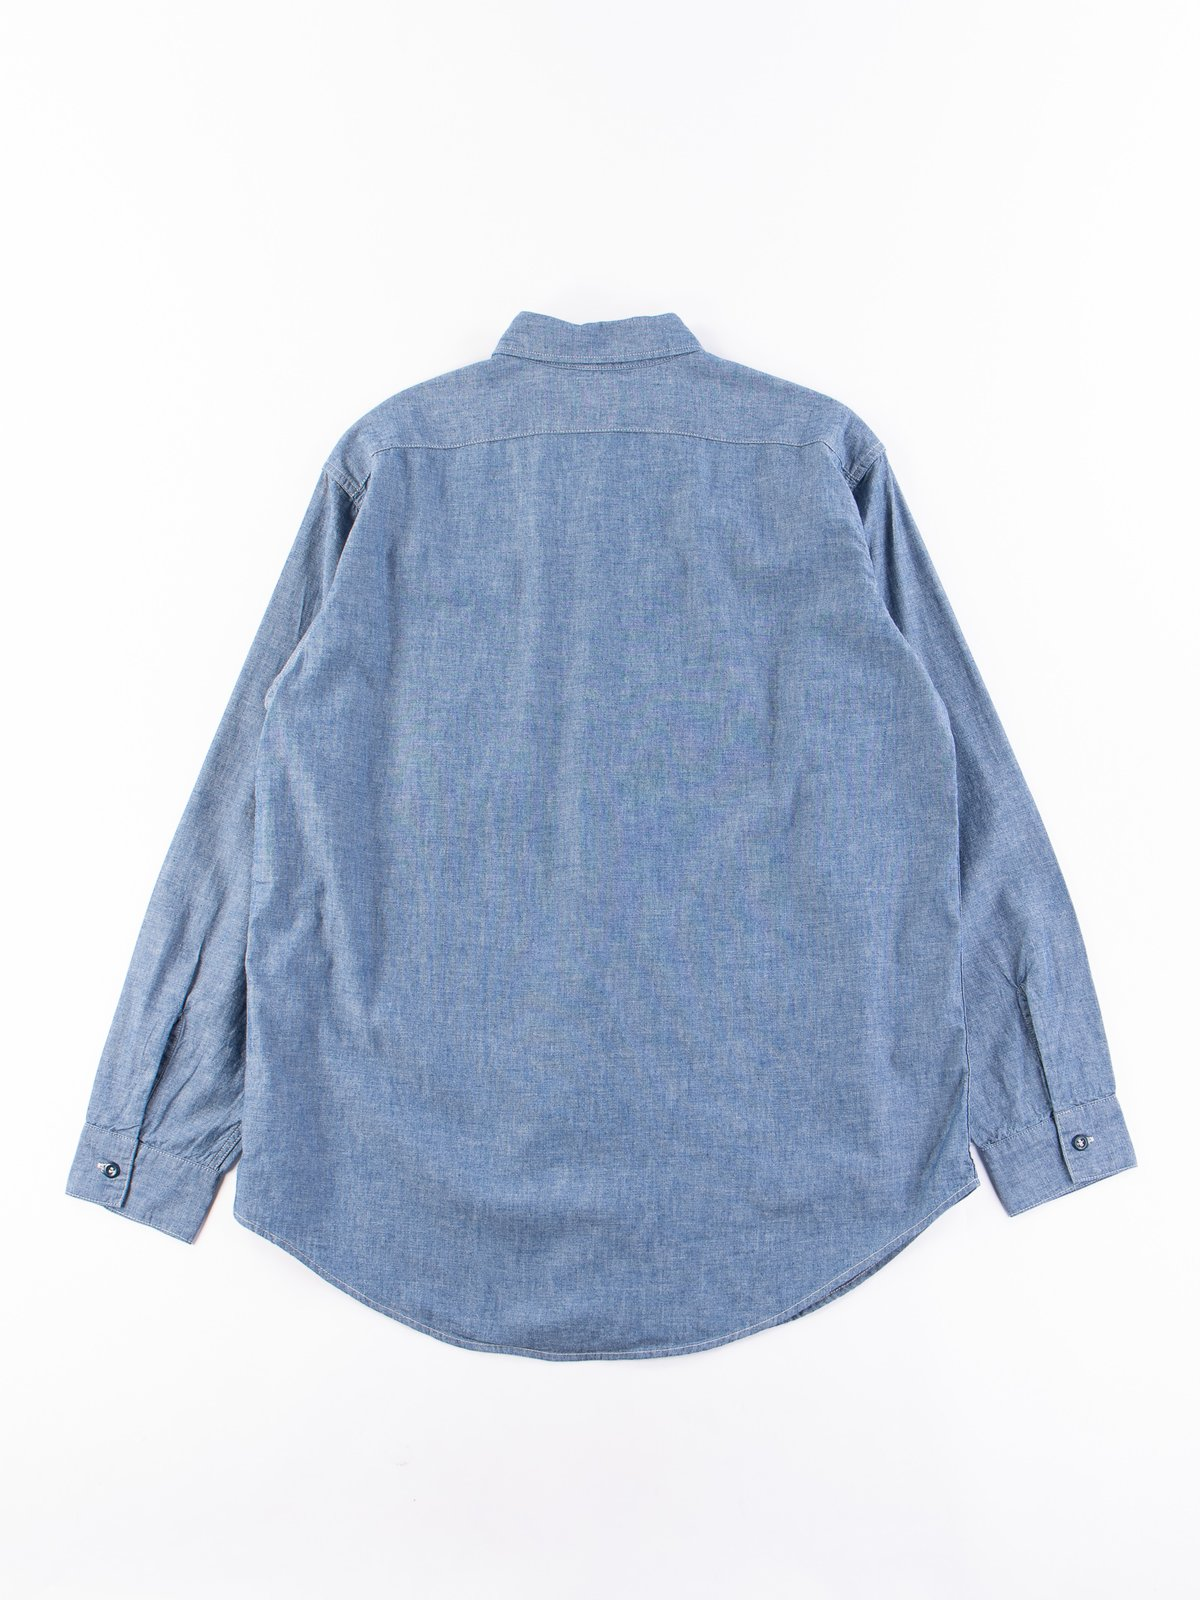 Blue Chambray Vintage Fit Work Shirt - Image 5